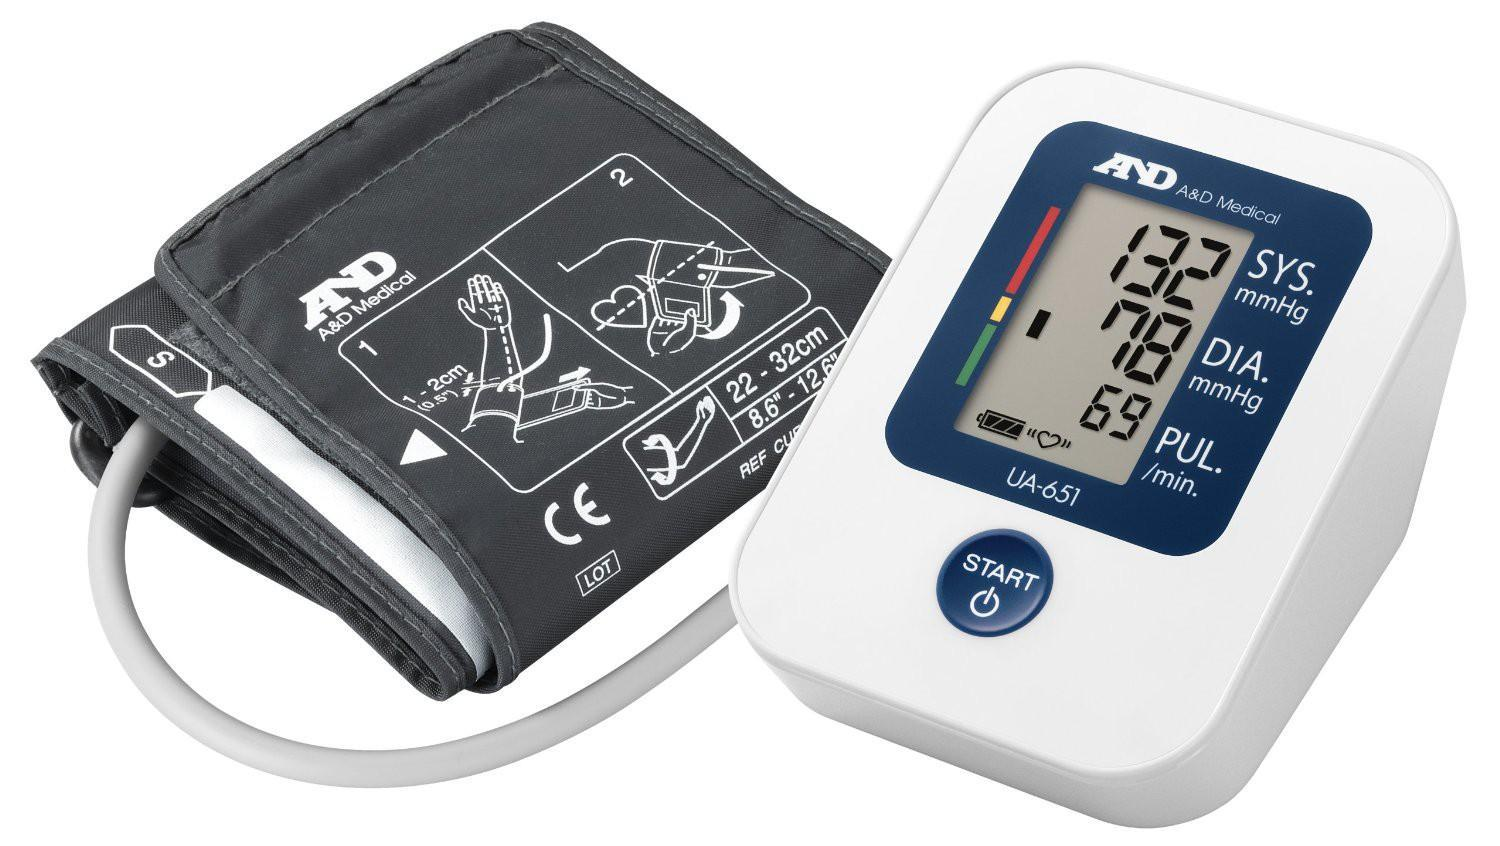 AND Blood Pressure Monitor UA-651 *2 Years Warranty* Japan Technology